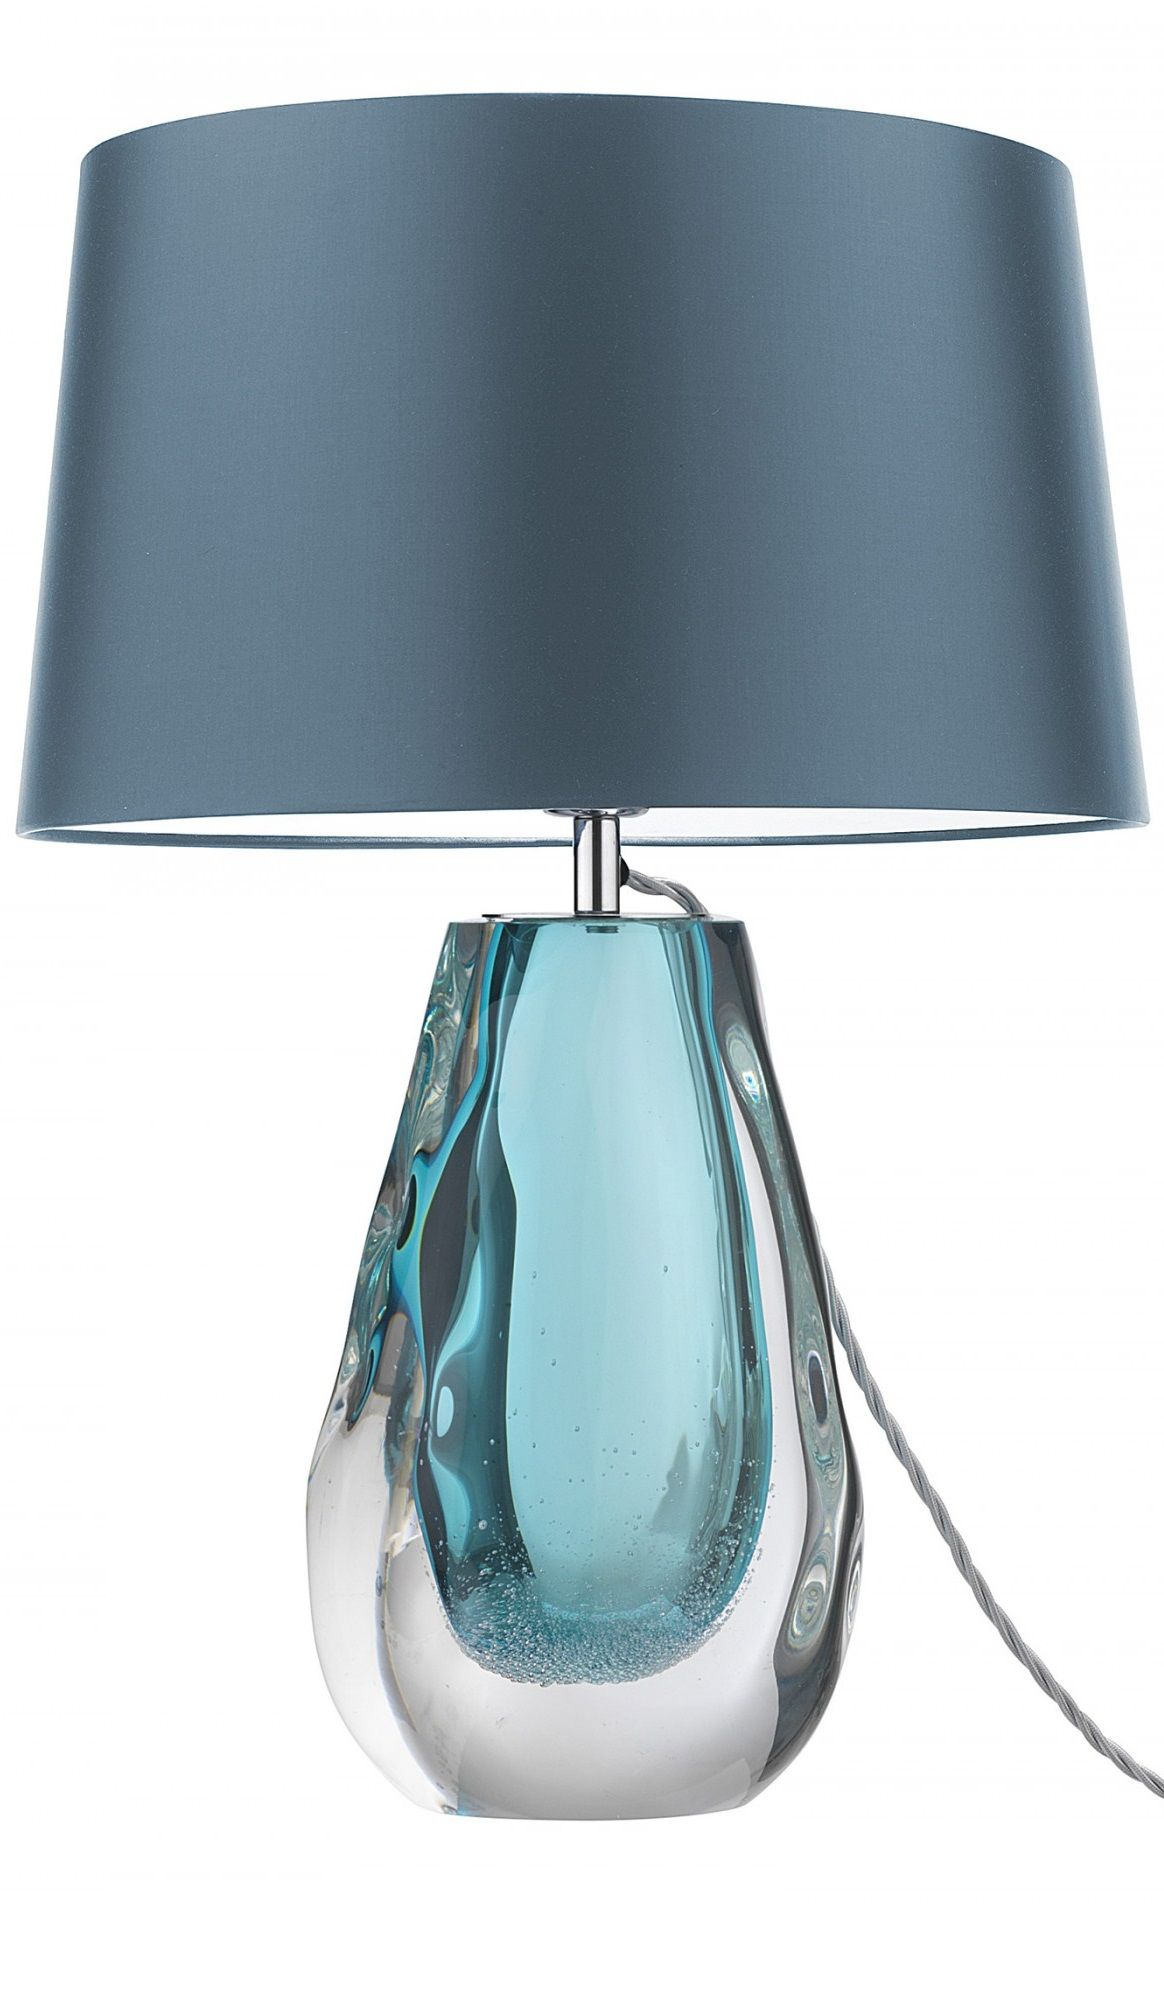 Blue blue table lamp table lamps modern table lamps contemporary table lamps designer table lamps luxury table lamps table lamp ideas